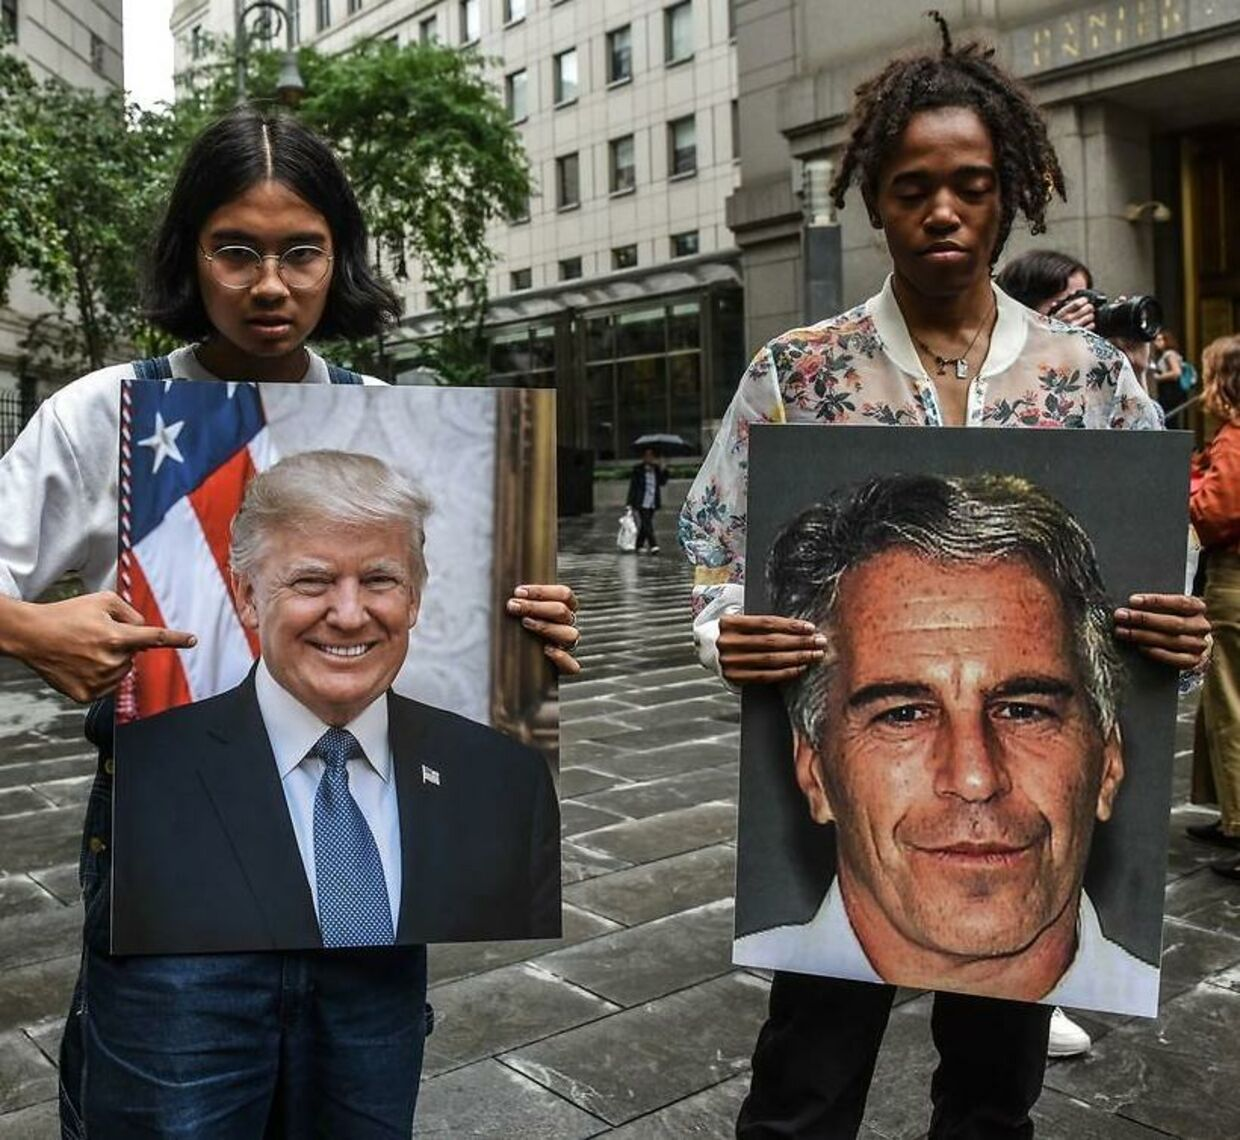 Demonstranter i New York holder foto af de to eks-venner Jeffrey Epstein og Donald Trump.